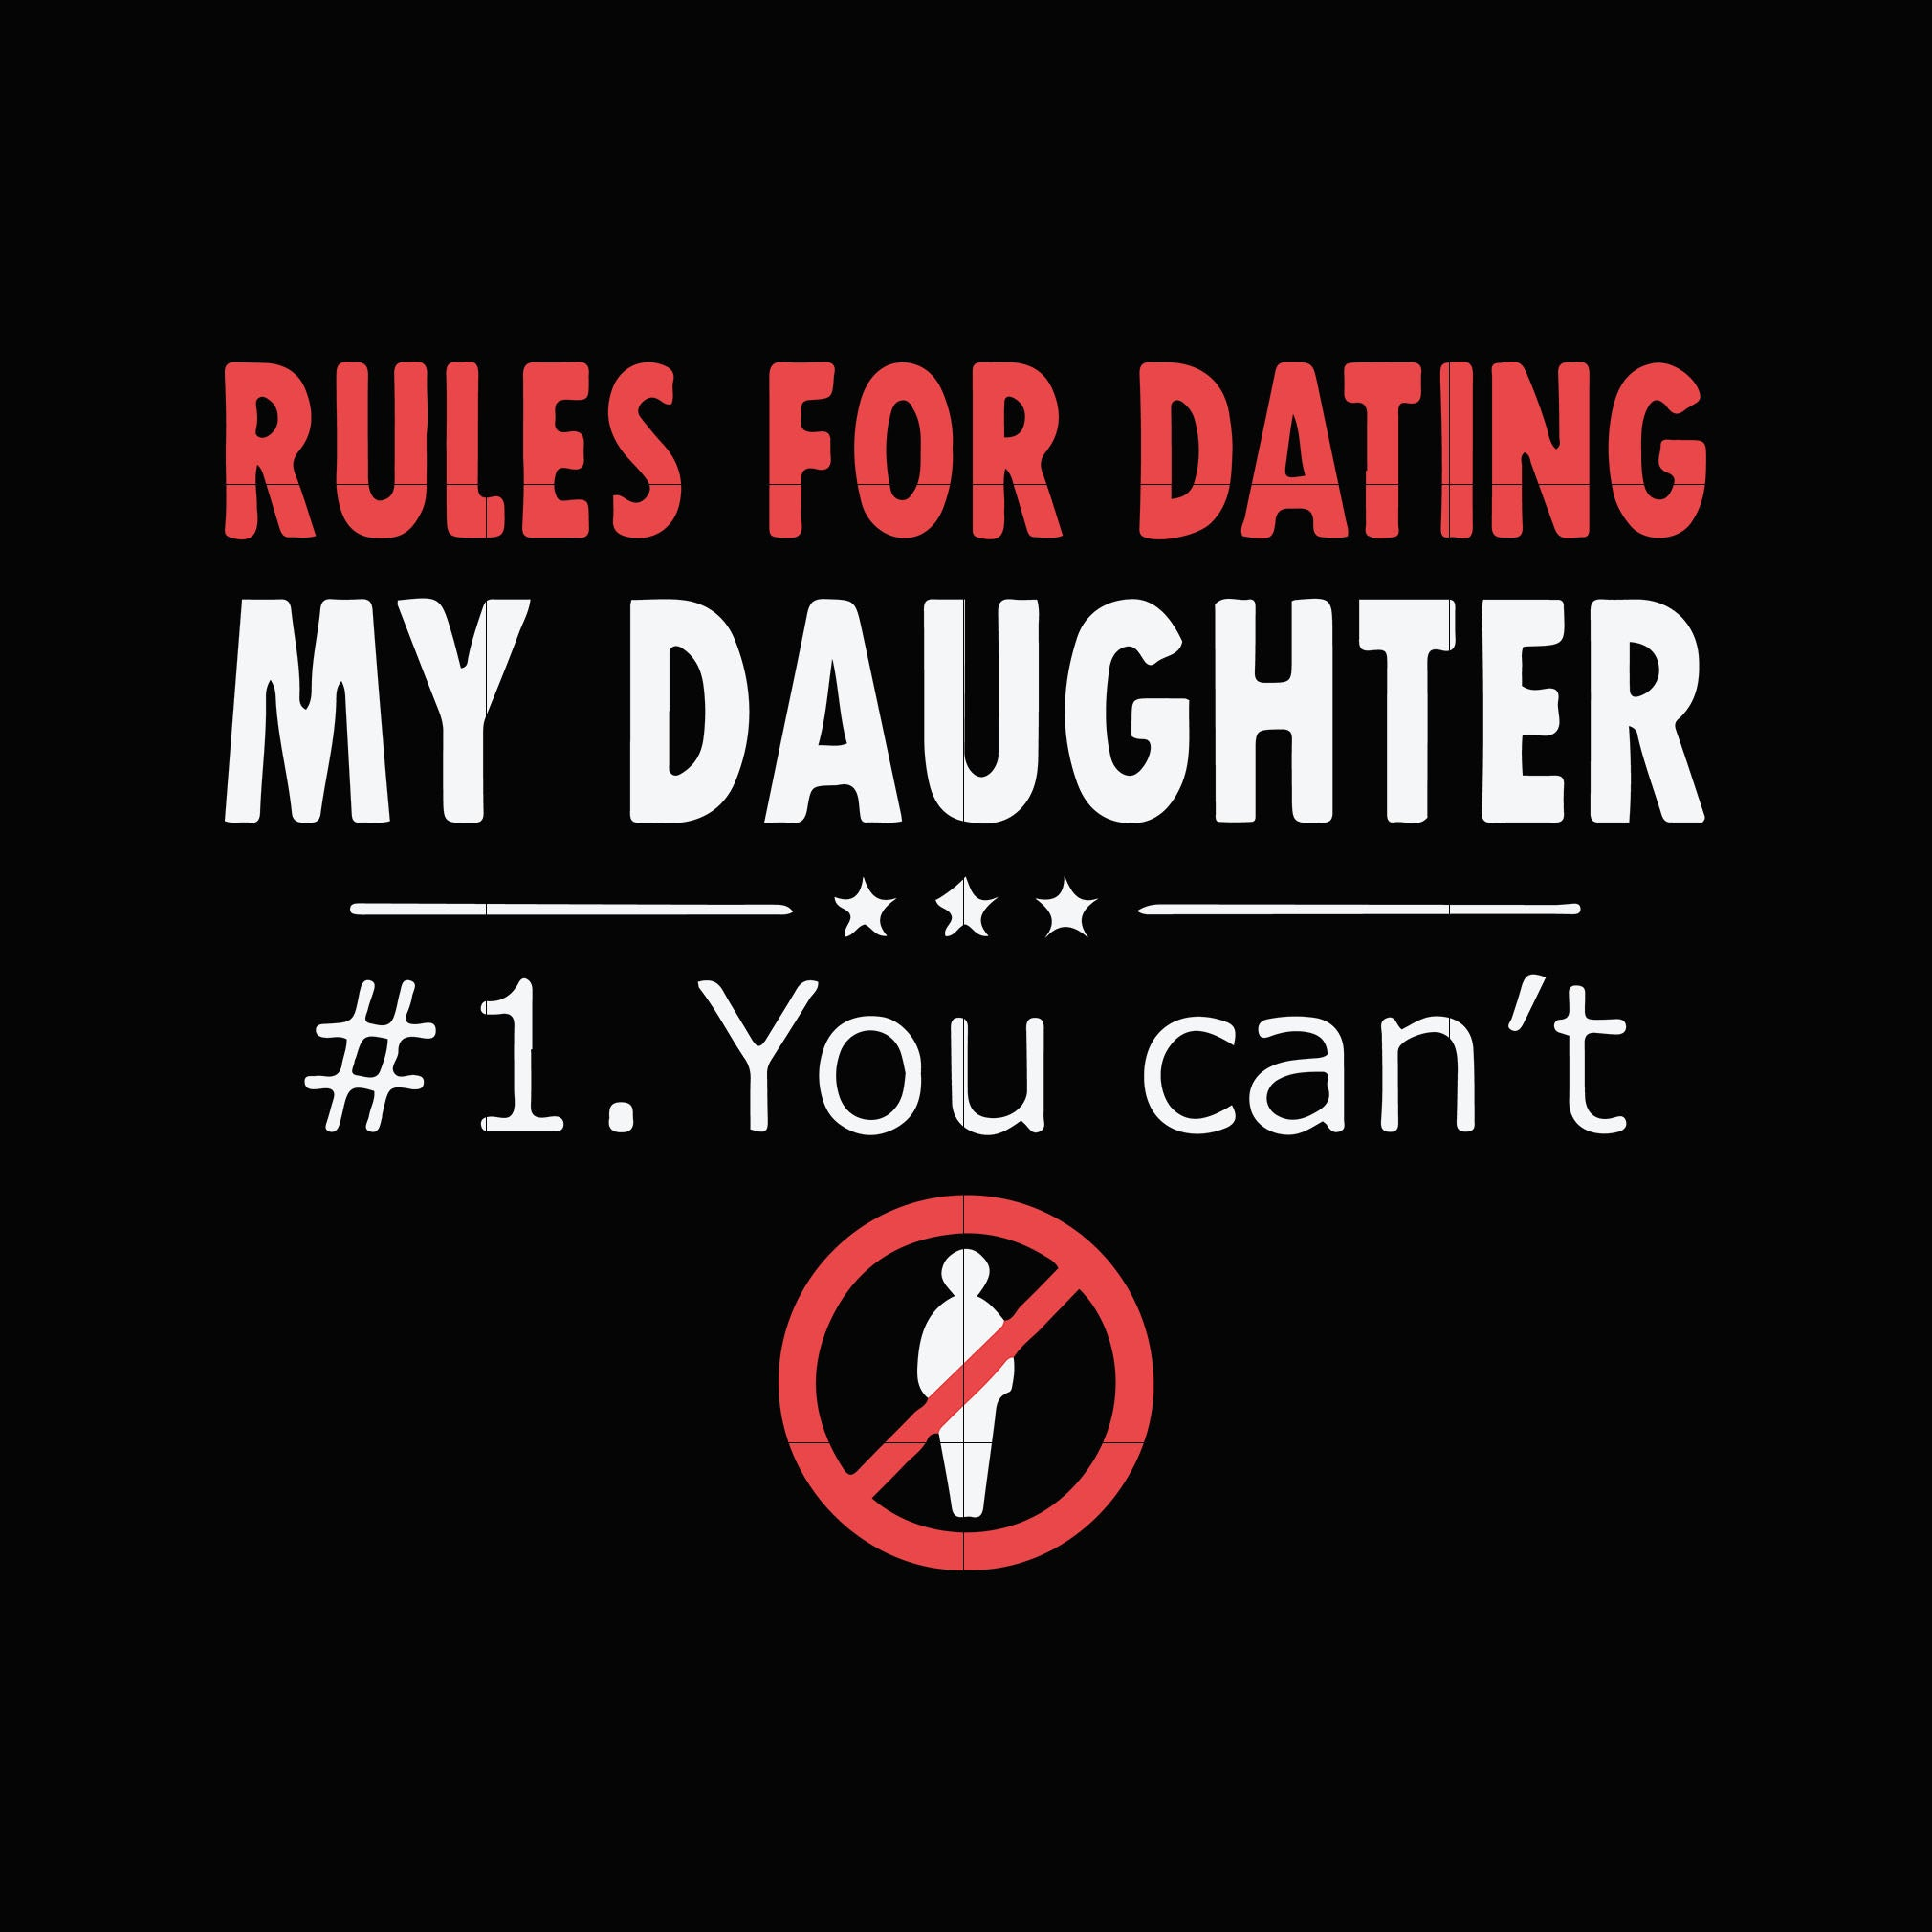 Rules for dating my daughter you can't svg,dxf,eps,png digital file